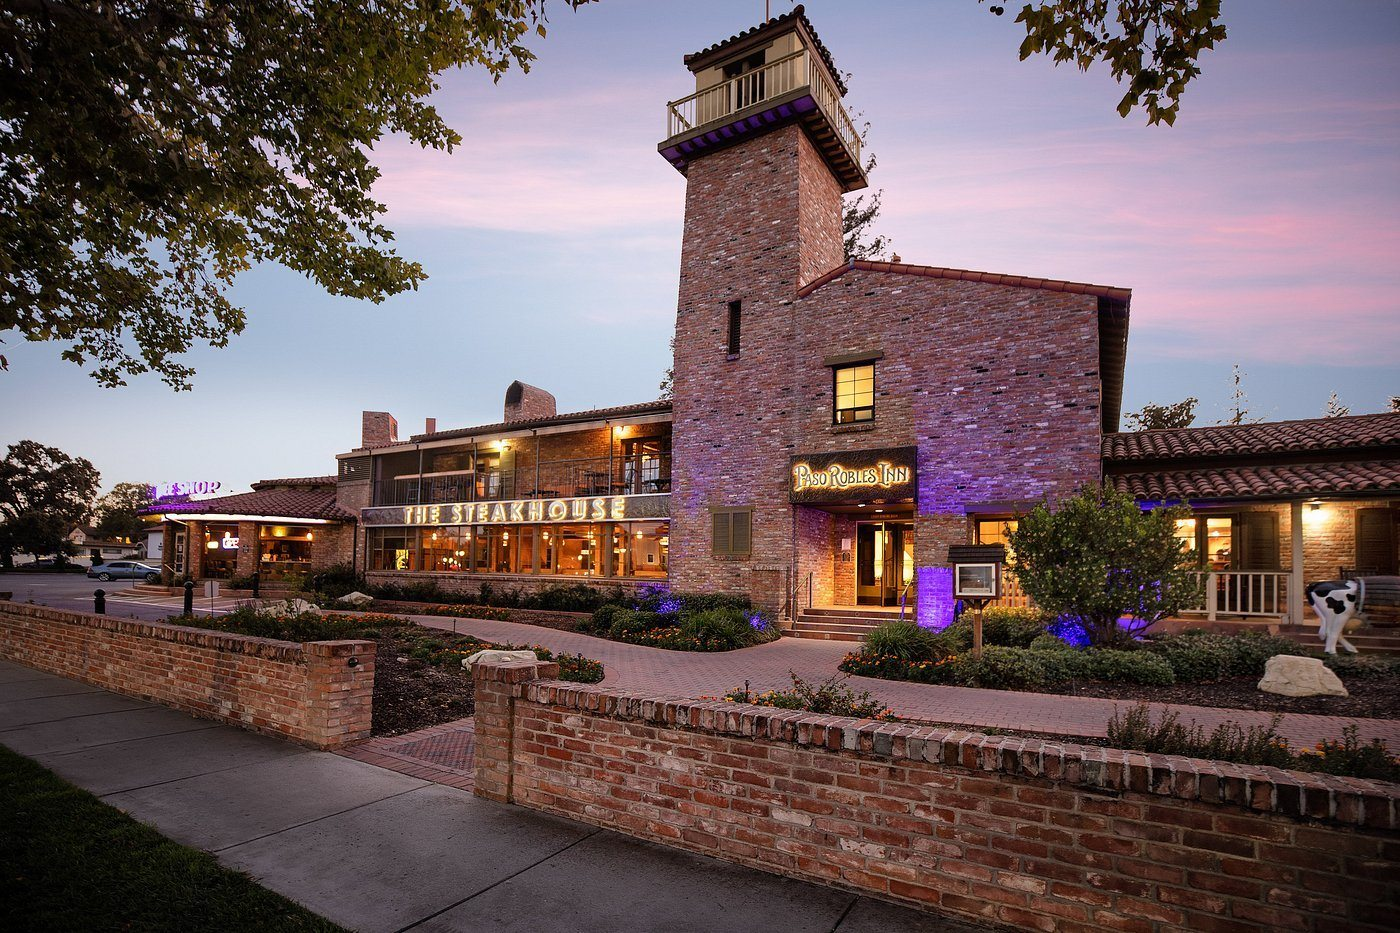 The Best Places to Stay in Paso Robles, by Travel Blogger What The Fab